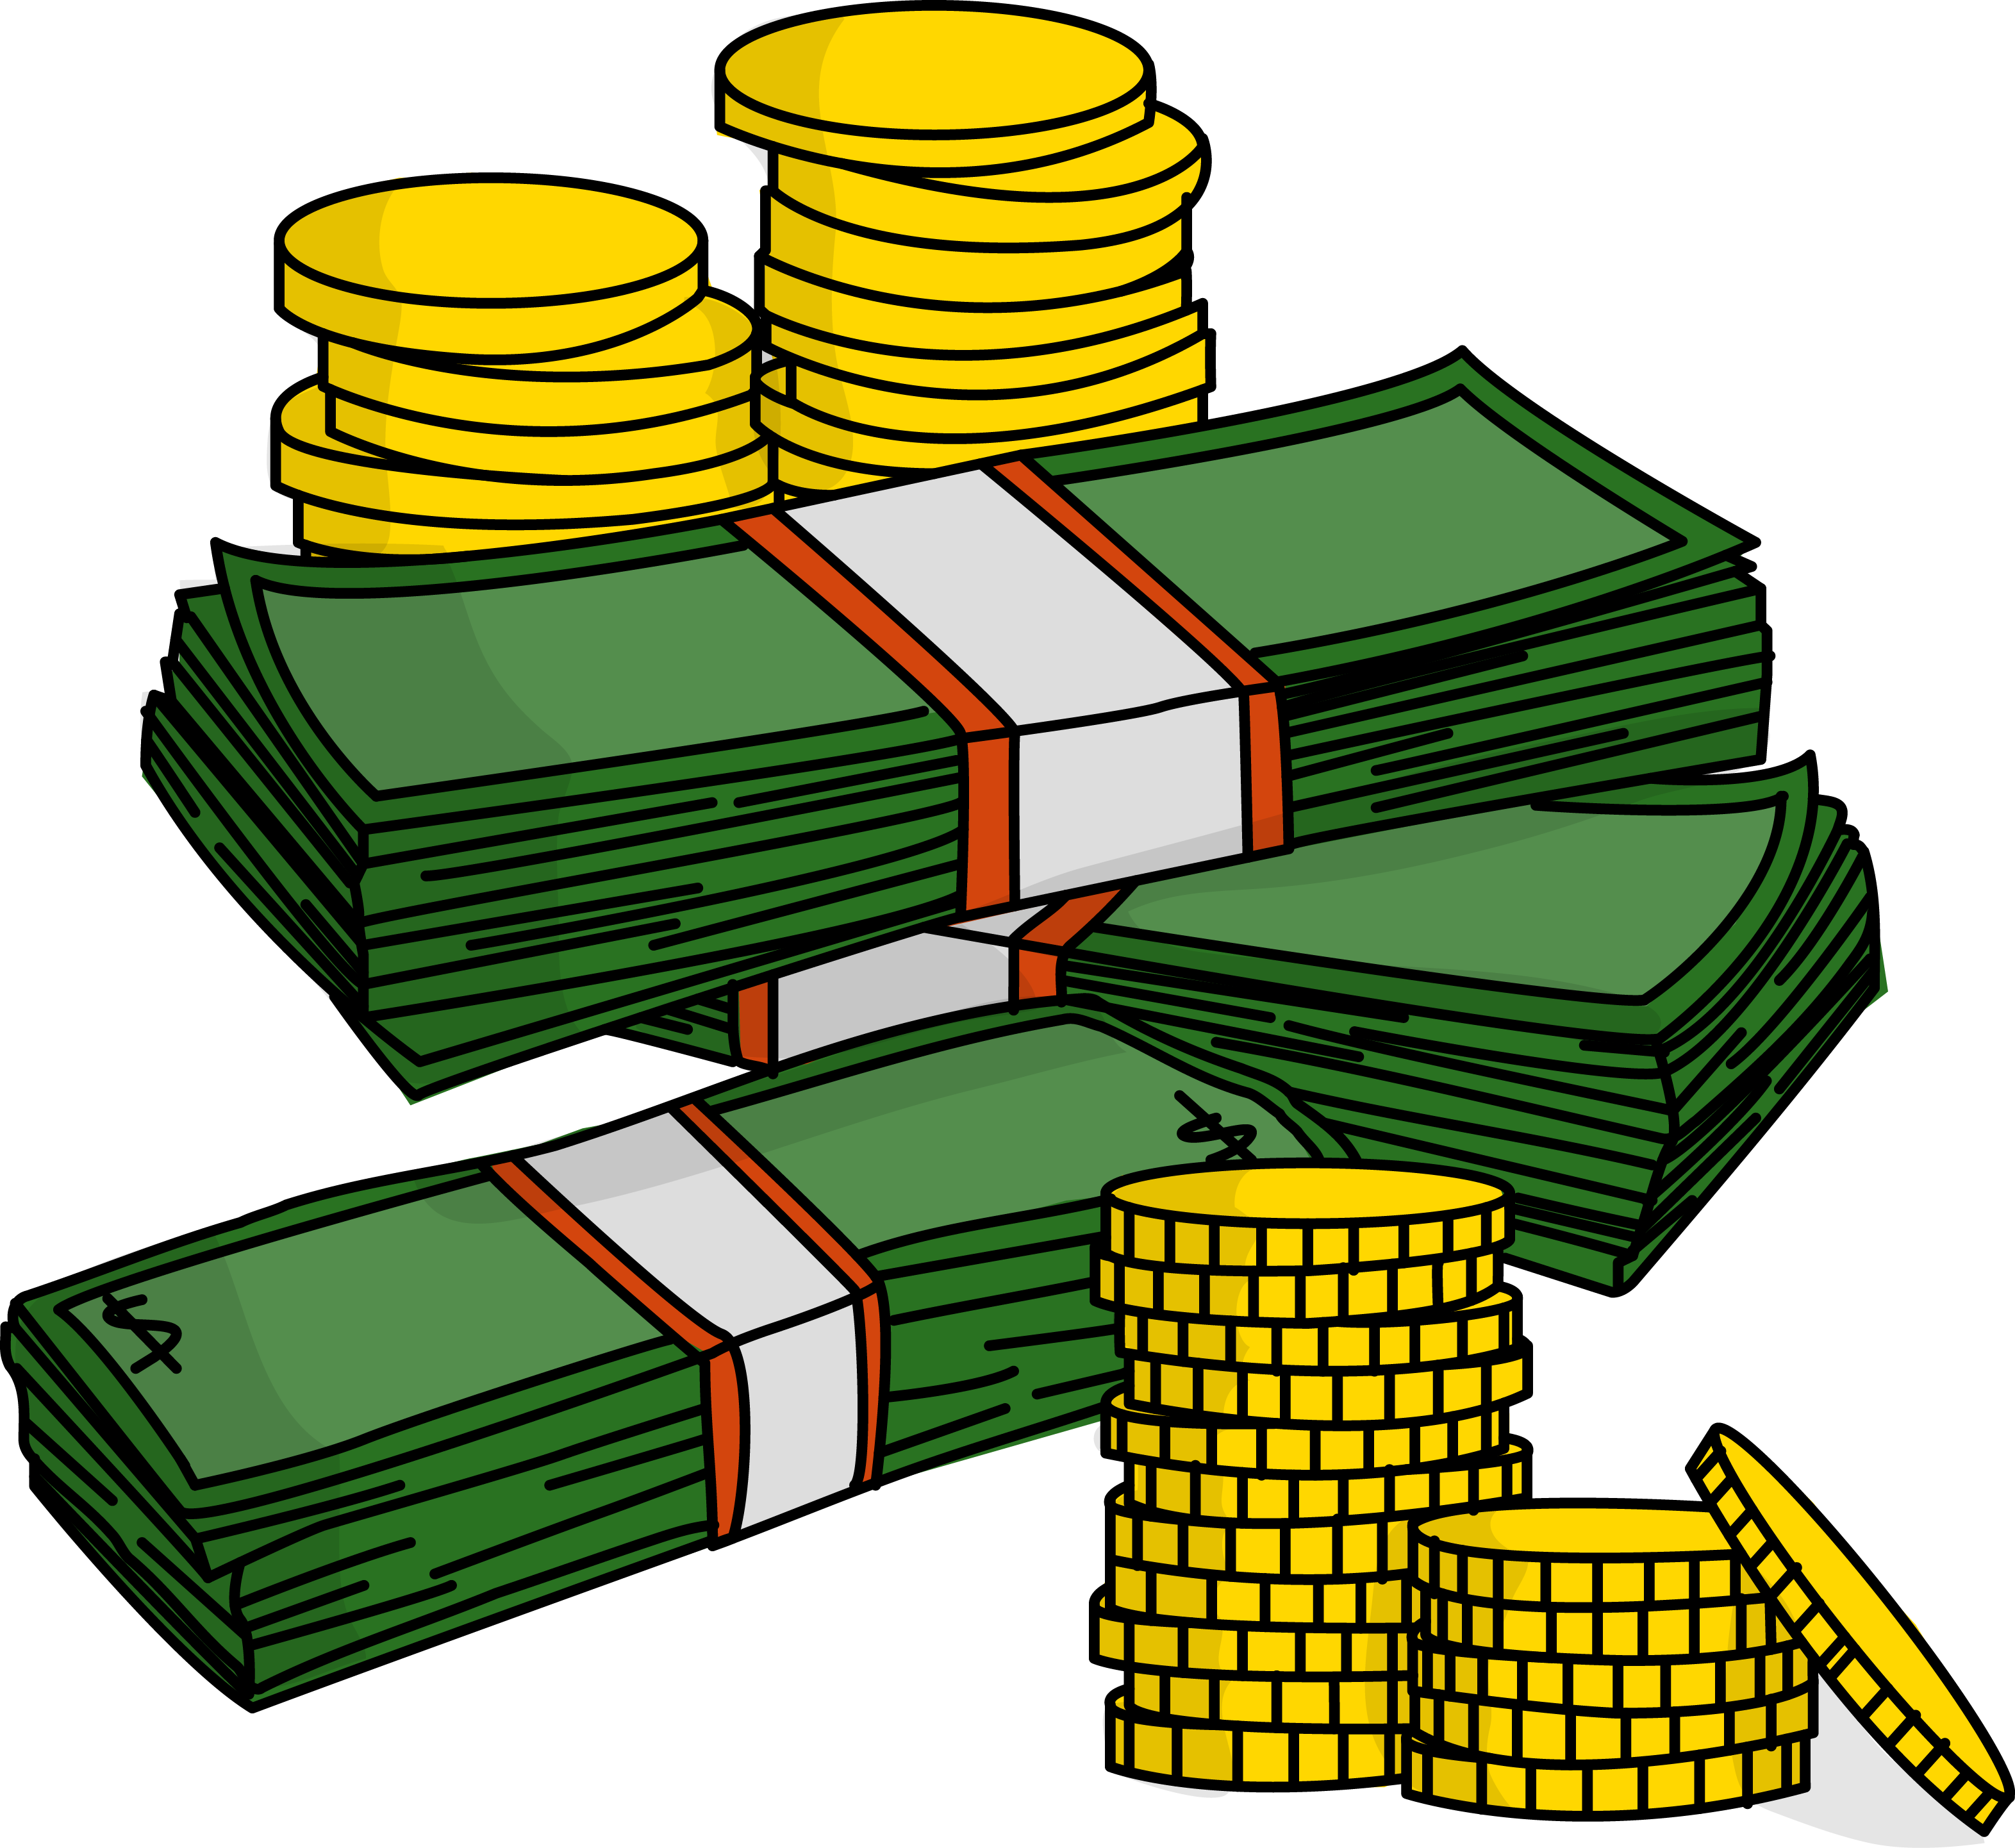 Free Stacks Of Money With Coins High Resolution Clip Art | All .